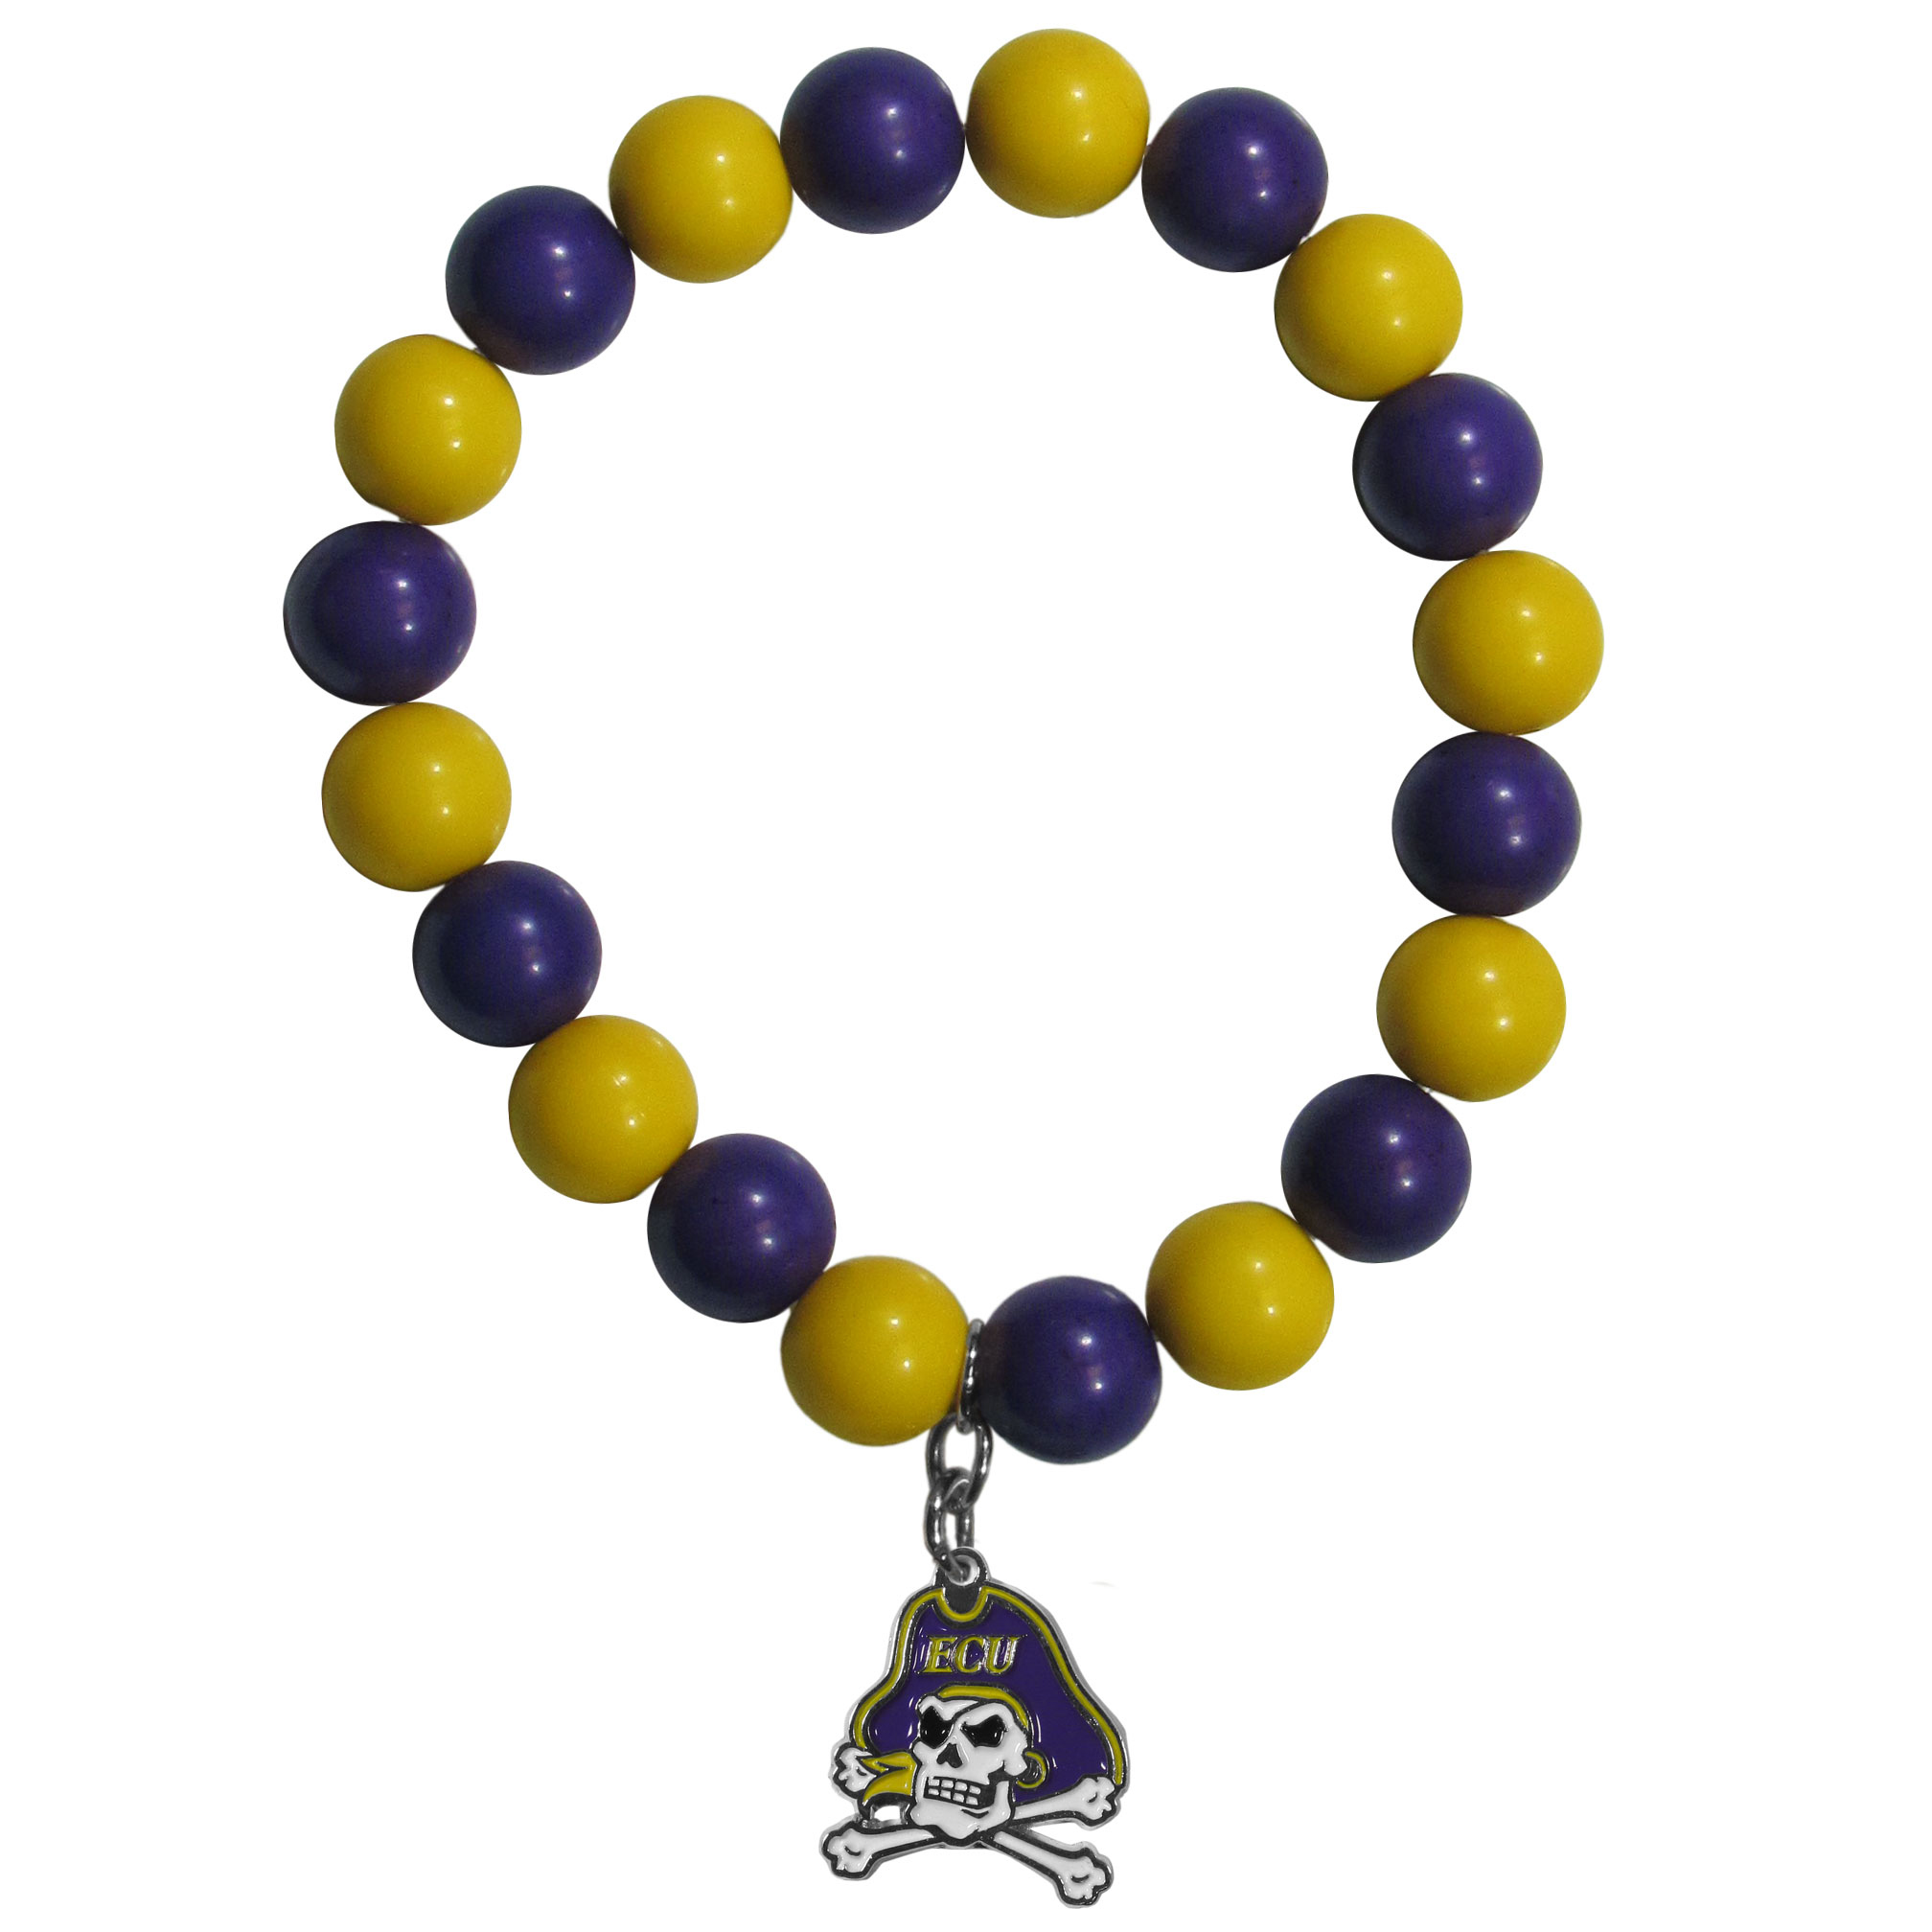 East Carolina Pirates Fan Bead Bracelet - Flash your East Carolina Pirates spirit with this bright stretch bracelet. This new bracelet features multicolored team beads on stretch cord with a nickel-free enameled chrome team charm. This bracelet adds the perfect pop of color to your game day accessories.